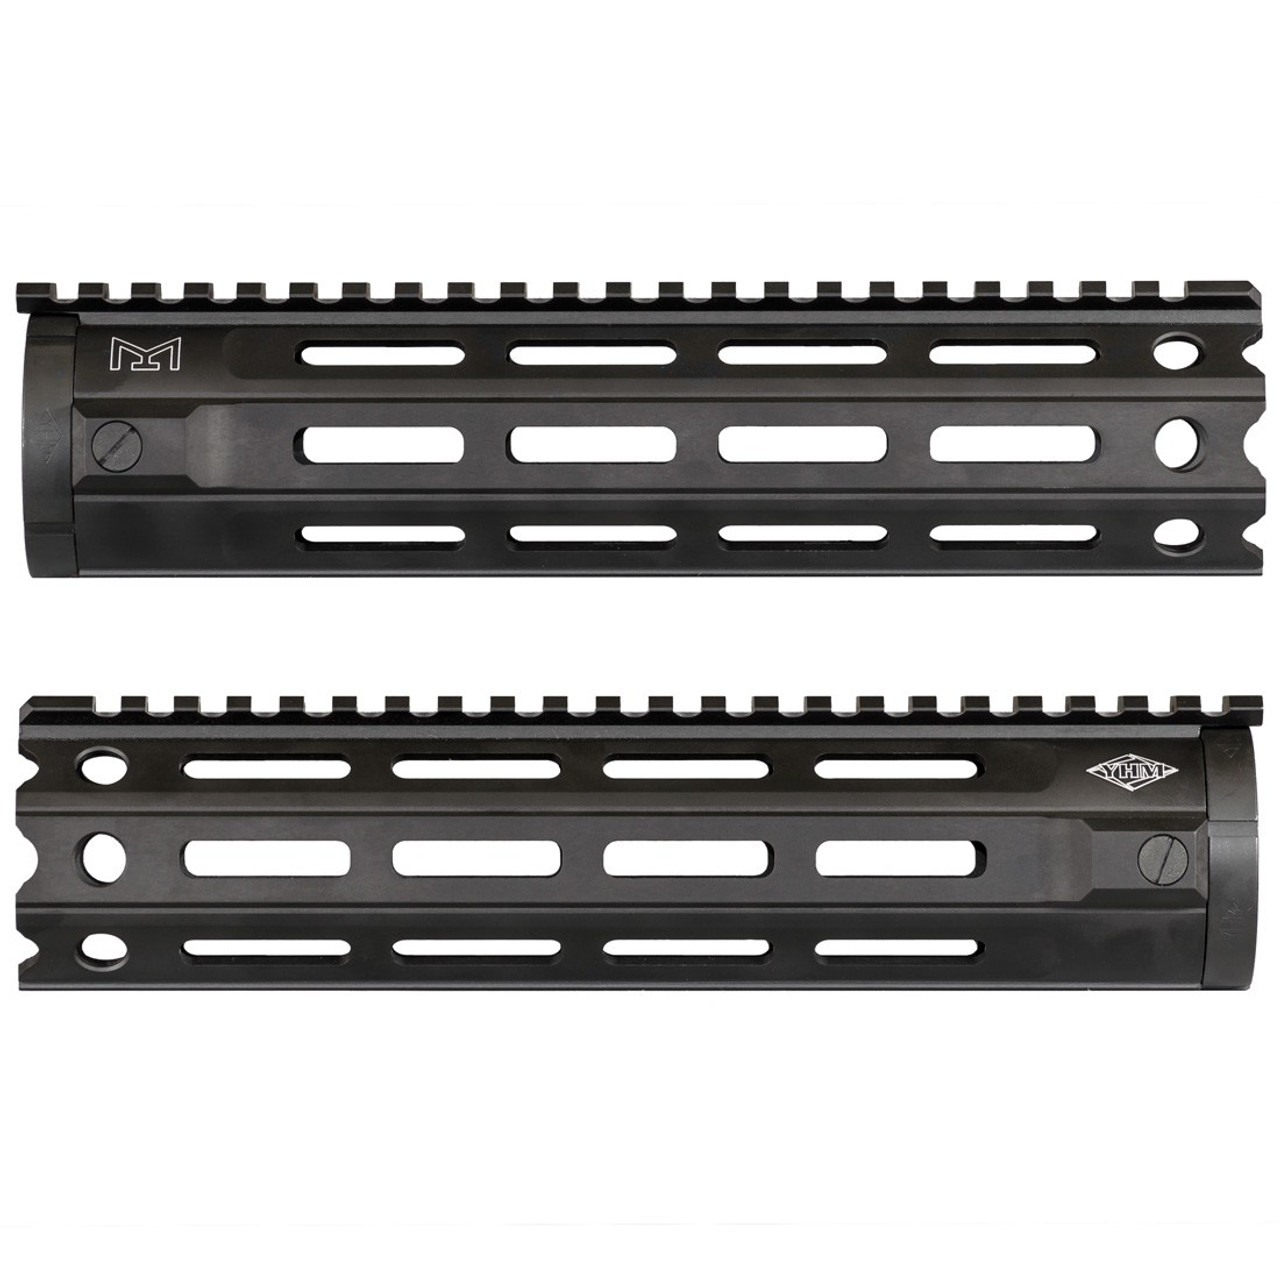 "Yankee Hill Machine MR7 MLok Handguard in 9.25"" Dolos compatible handguard"